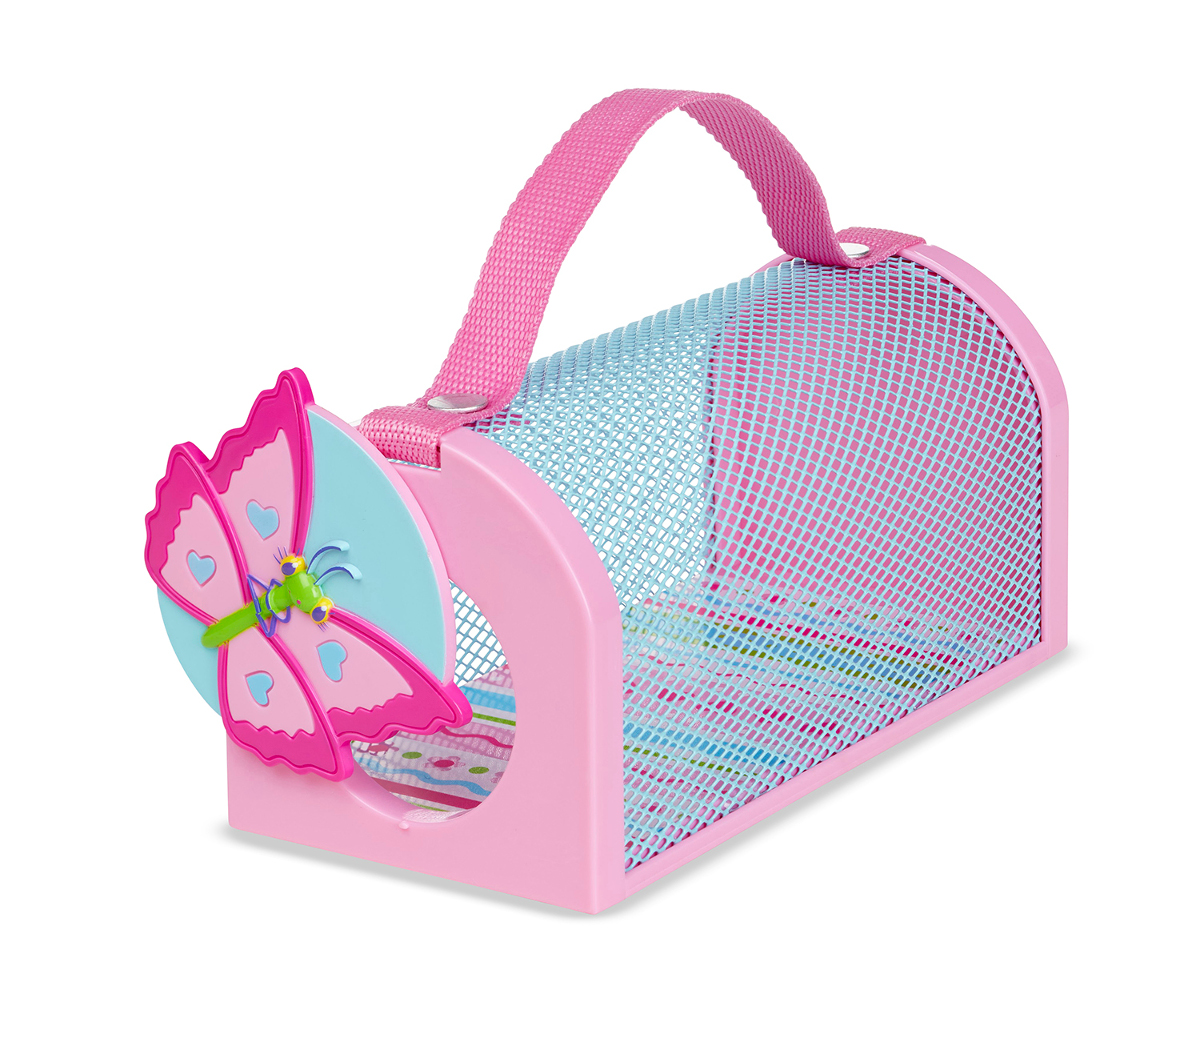 Cutie Pie Butterfly Bug House Outdoor Play | PuzzleWarehouse.com